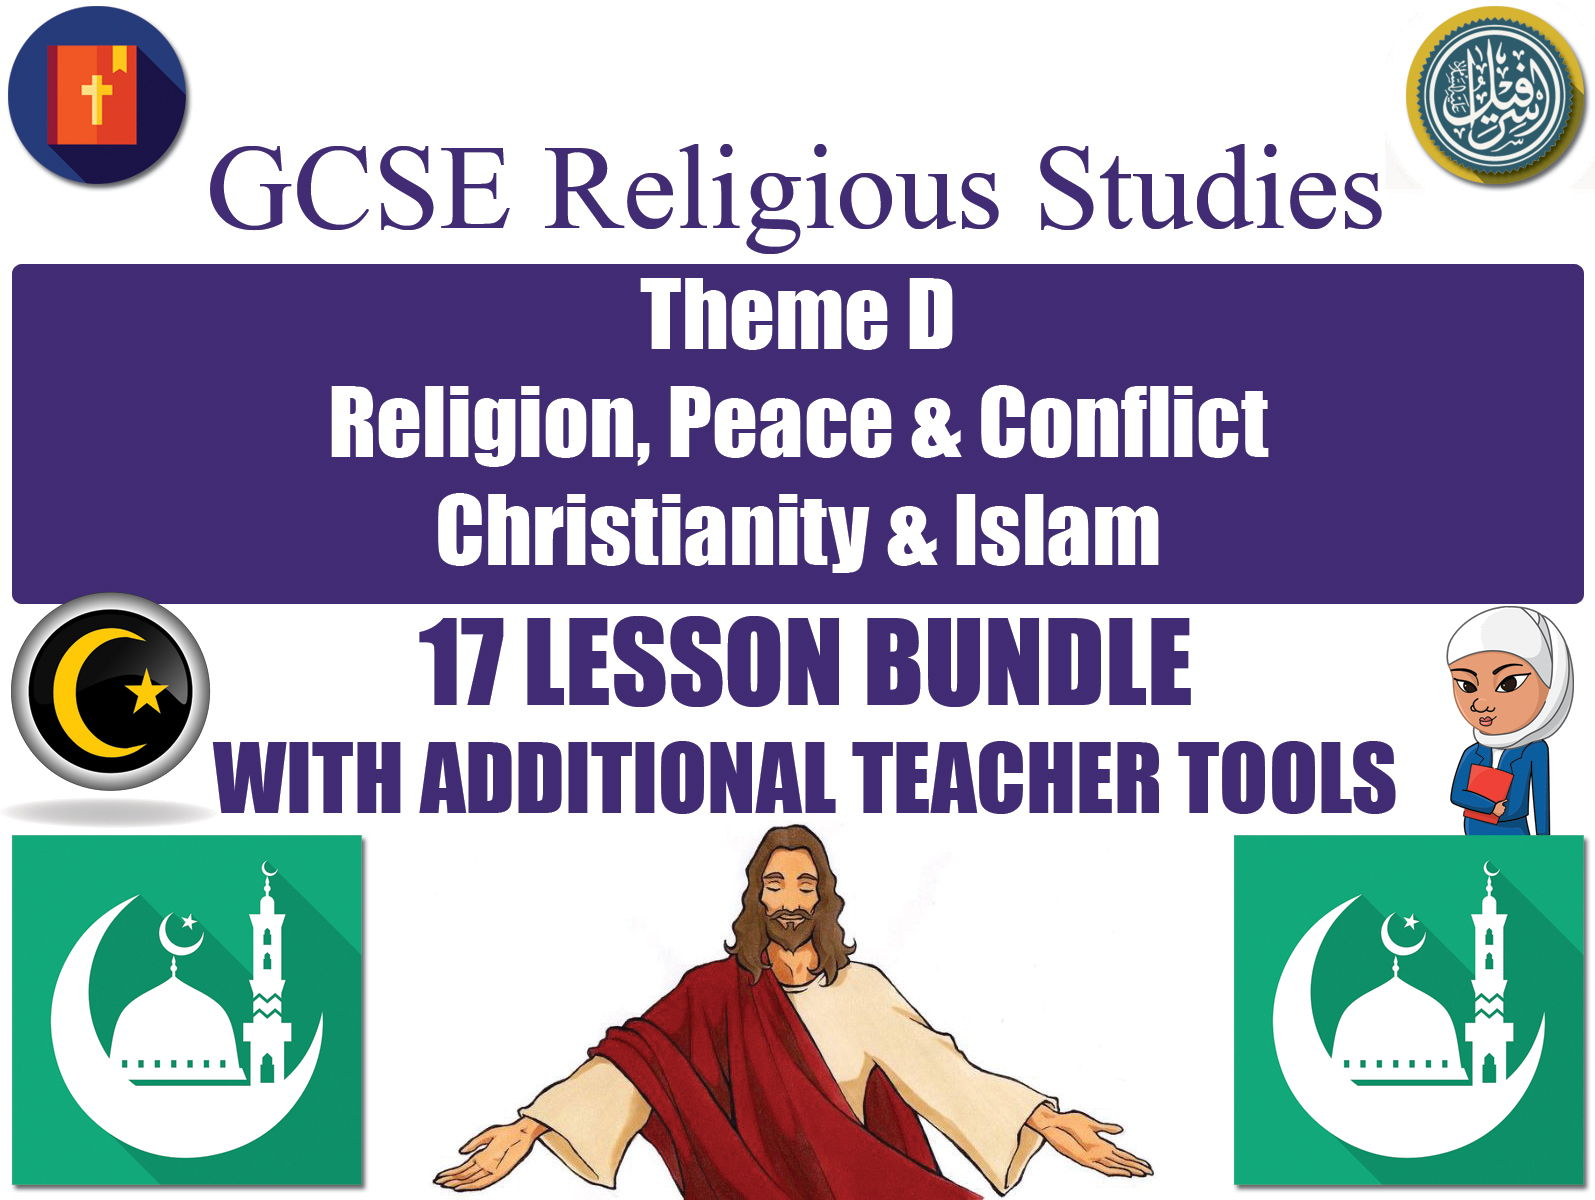 GCSE Islam & Christianity - Religion, Peace & Conflict (17 Lessons)